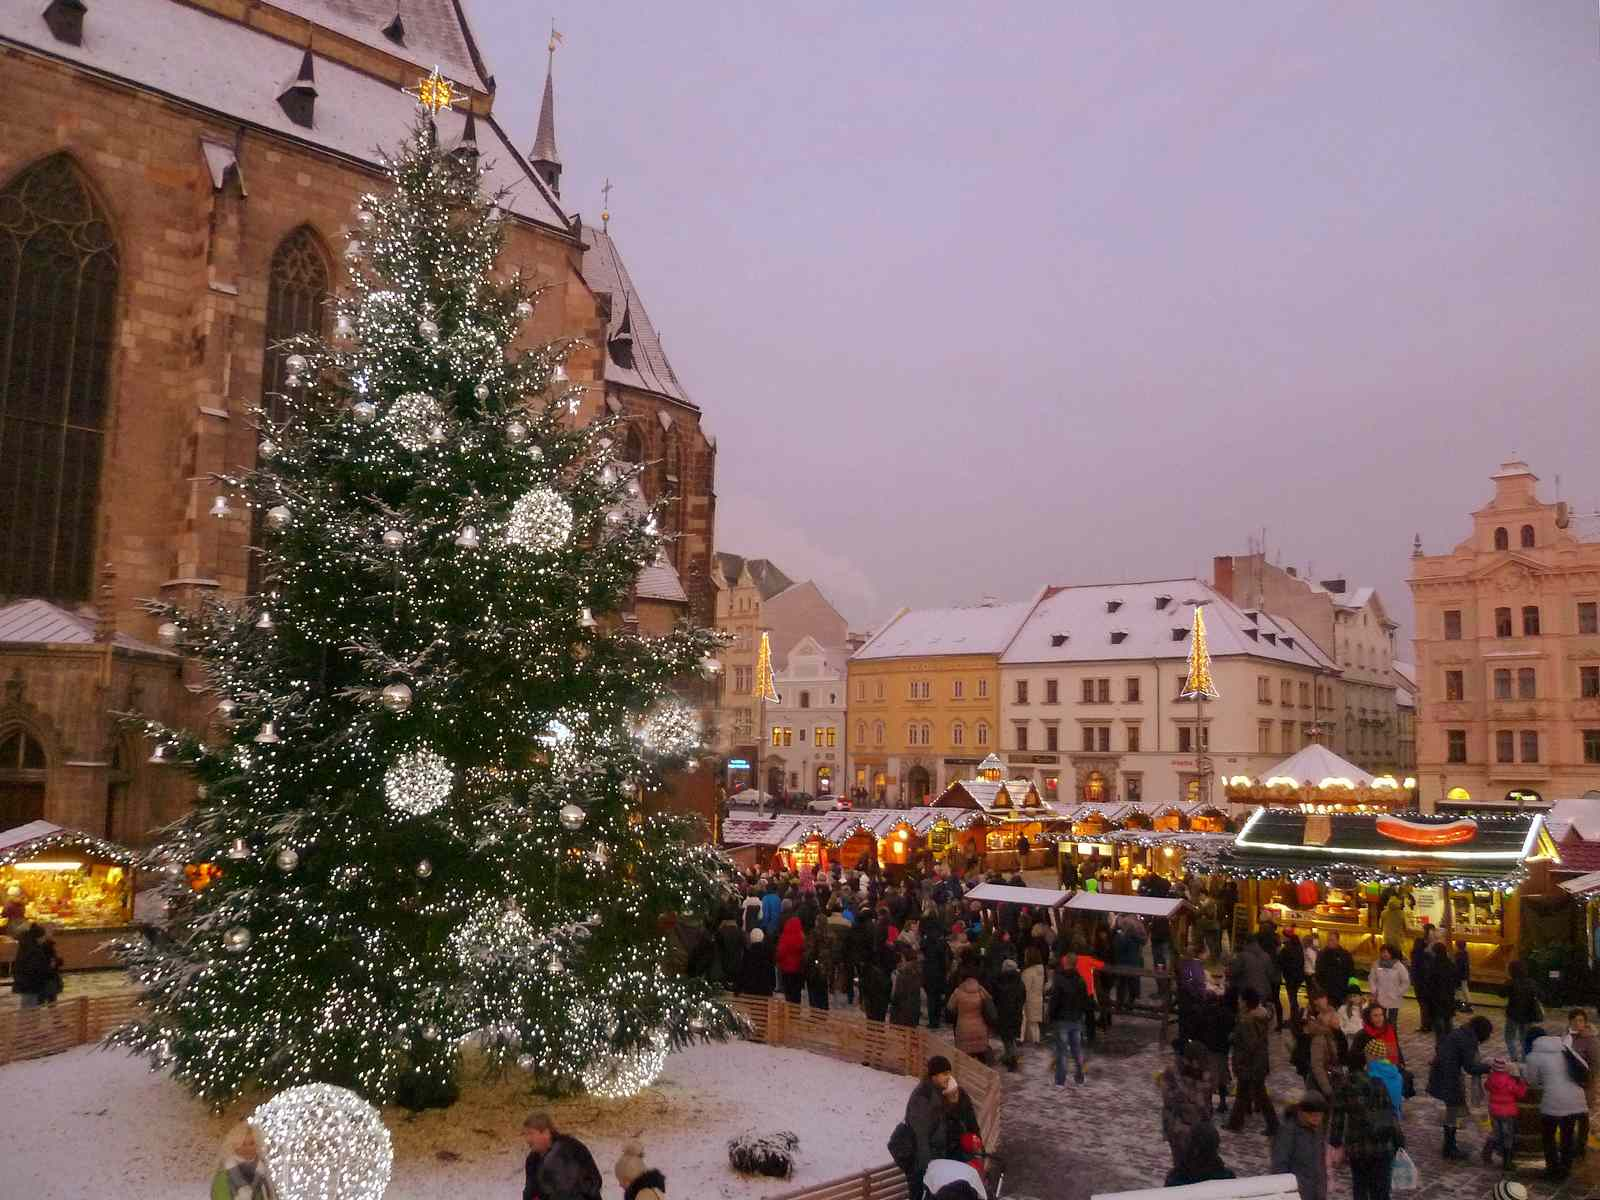 Plzeň events  calendar: Christmas markets in Pilsen attract a lot of tourists.